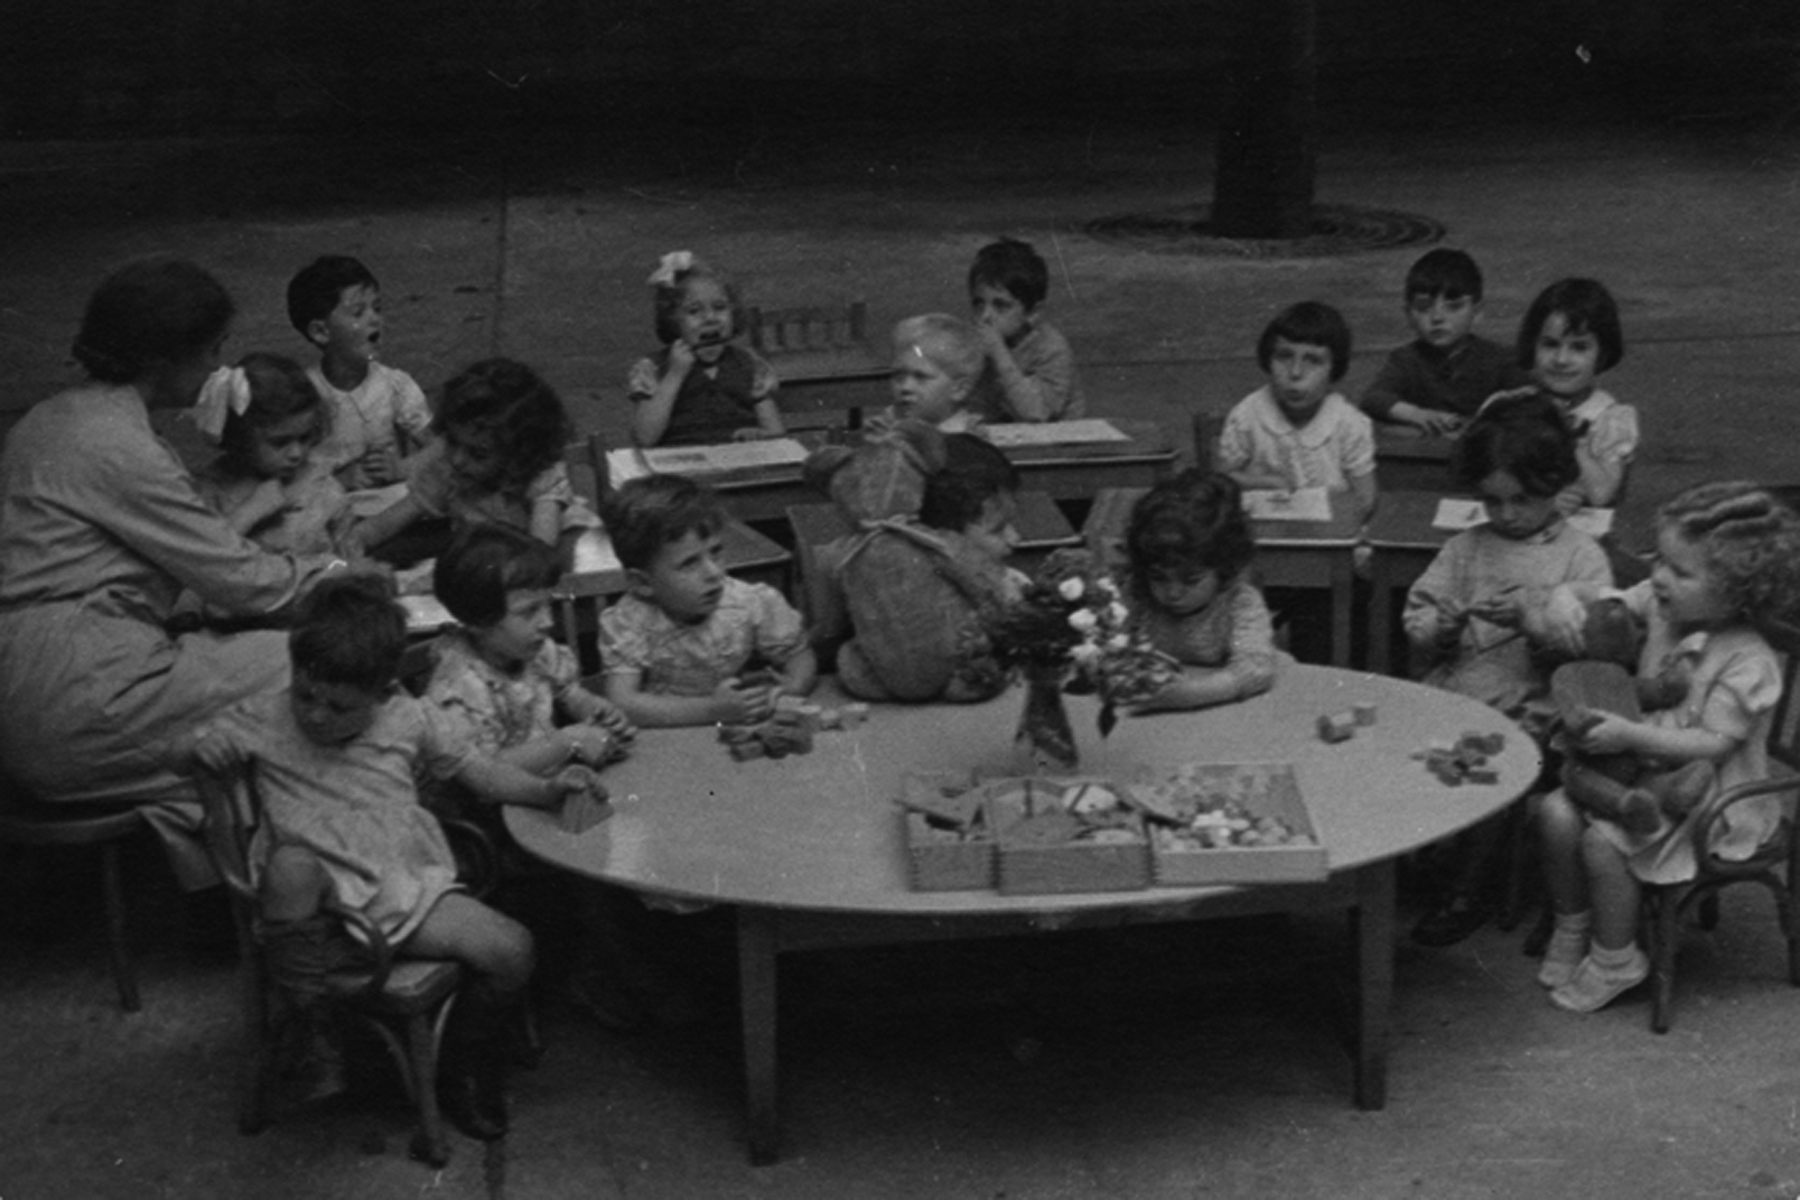 Jewish children in a daycare centre, Paris, 1934.